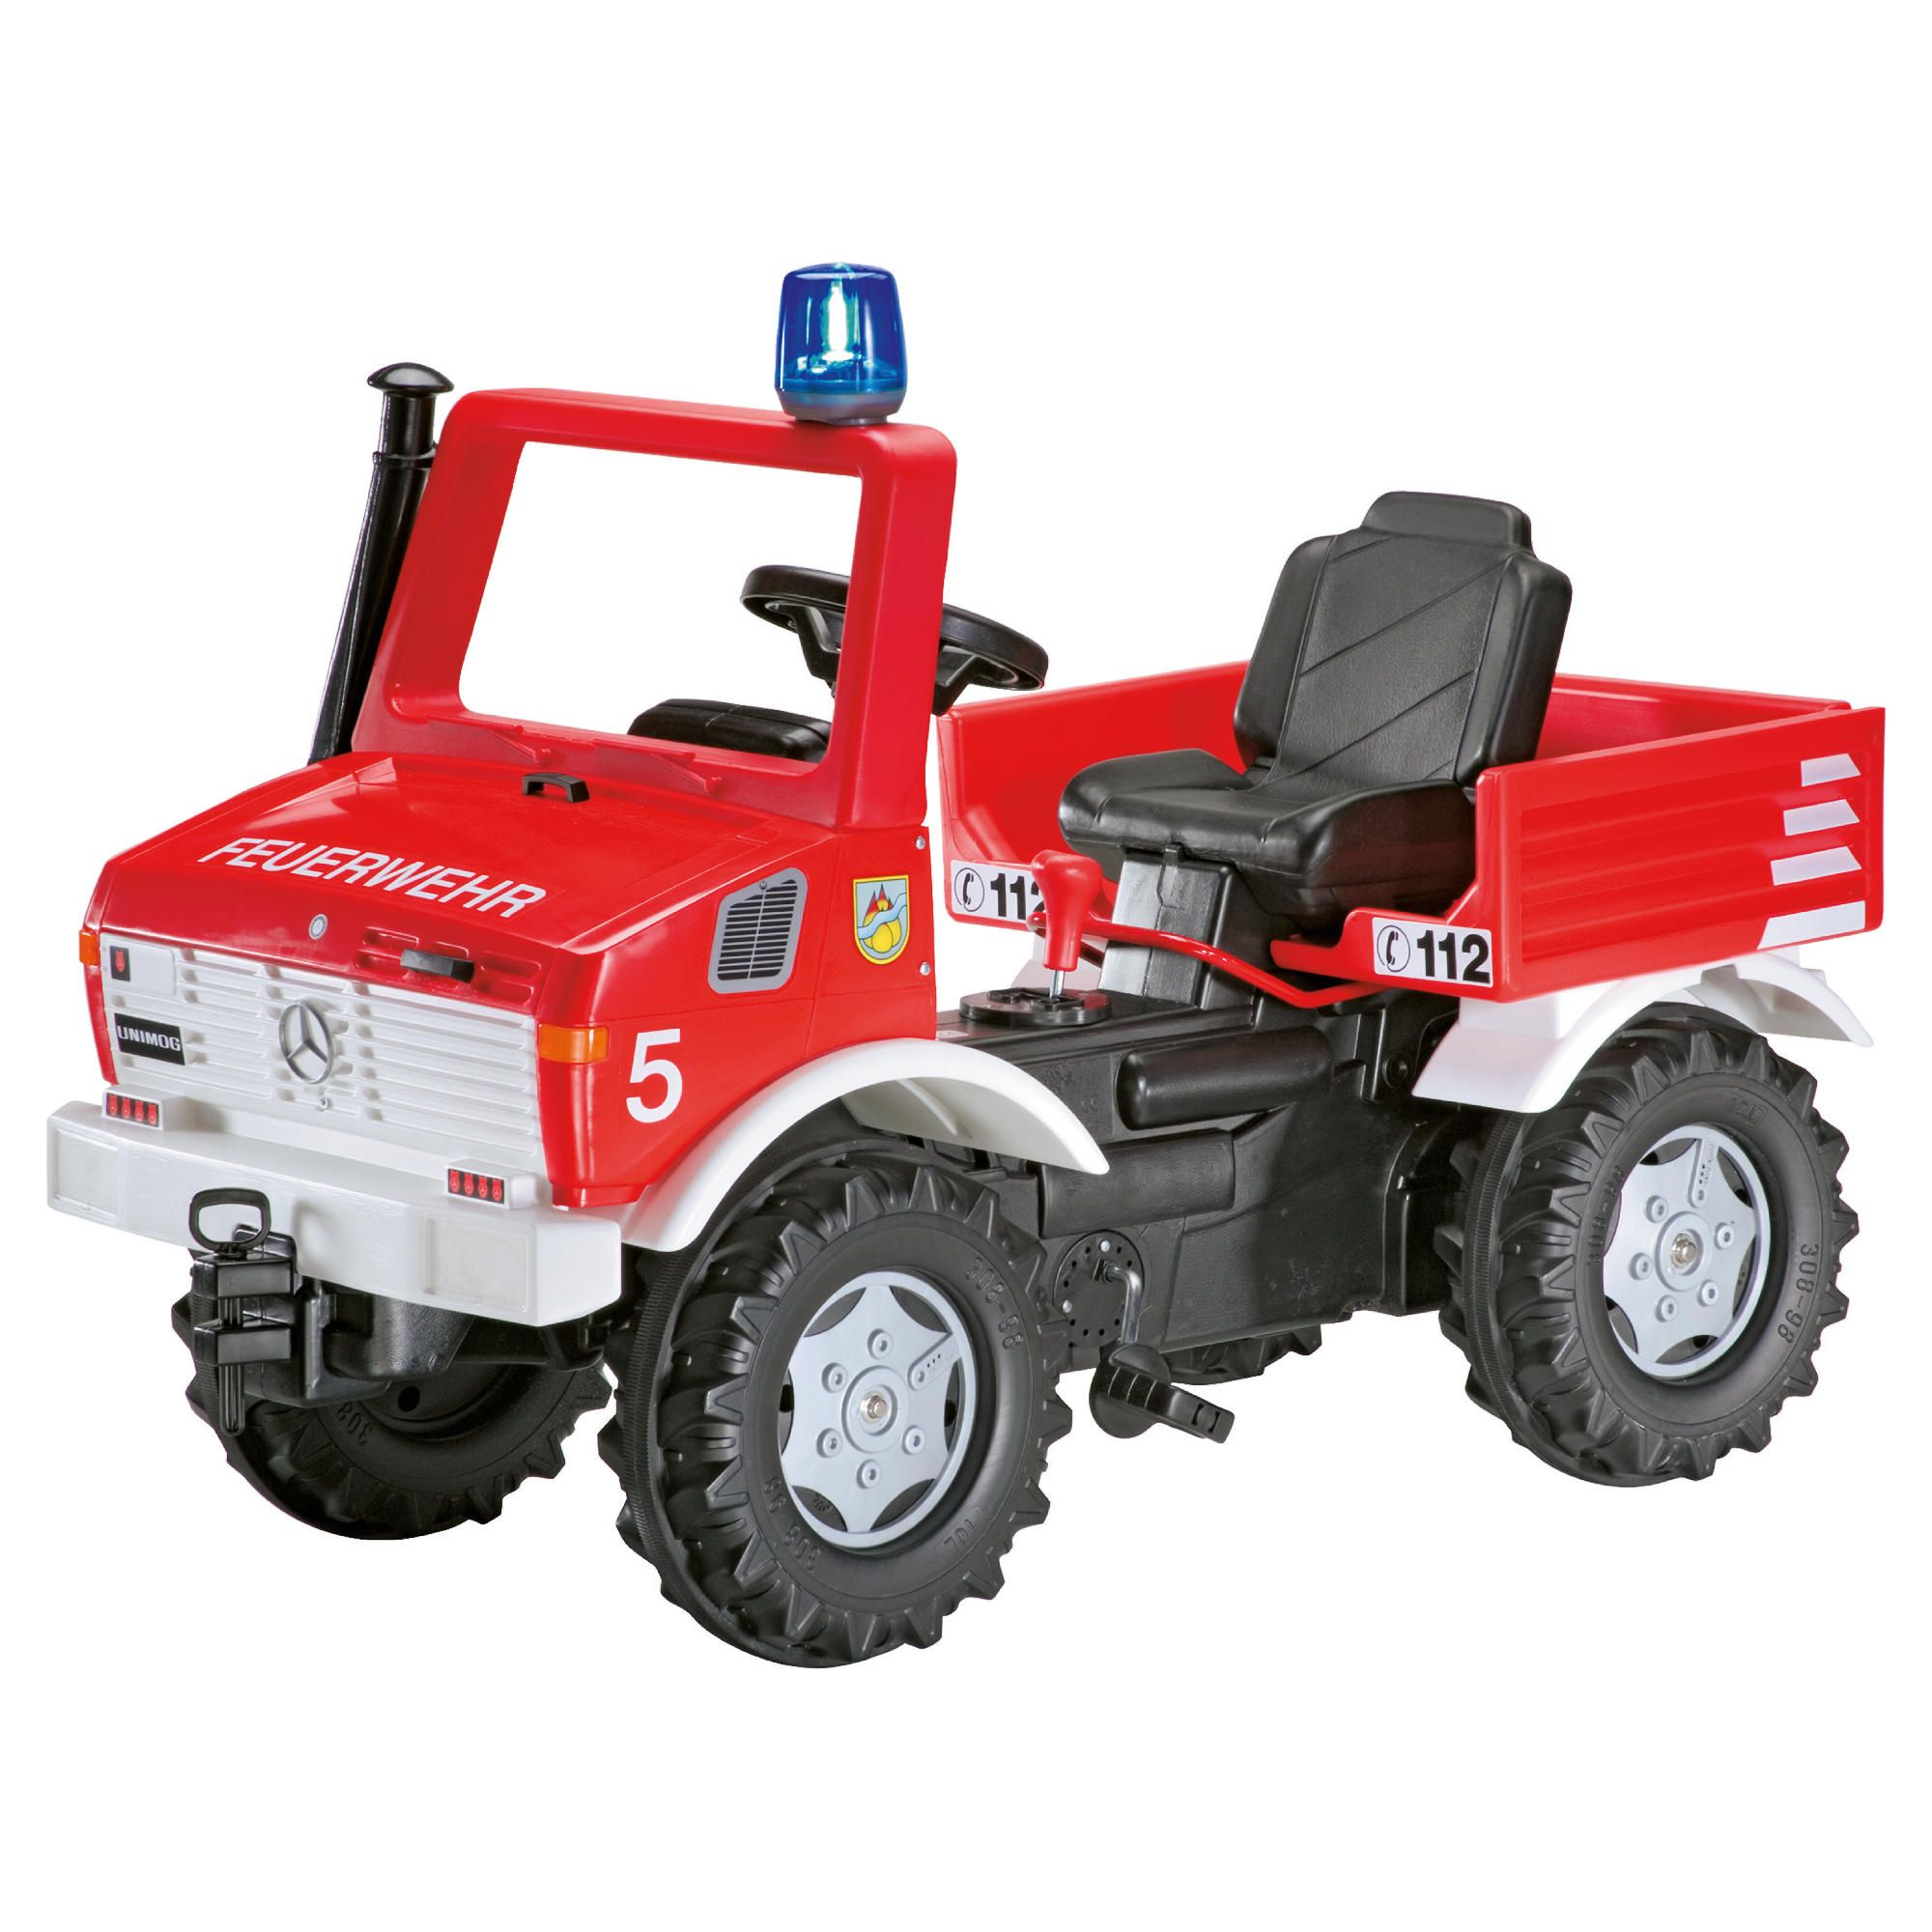 Fire Brigade Unimog Ride-On With Gears, Handbrake & Blue Flashing Light at Tesco Direct